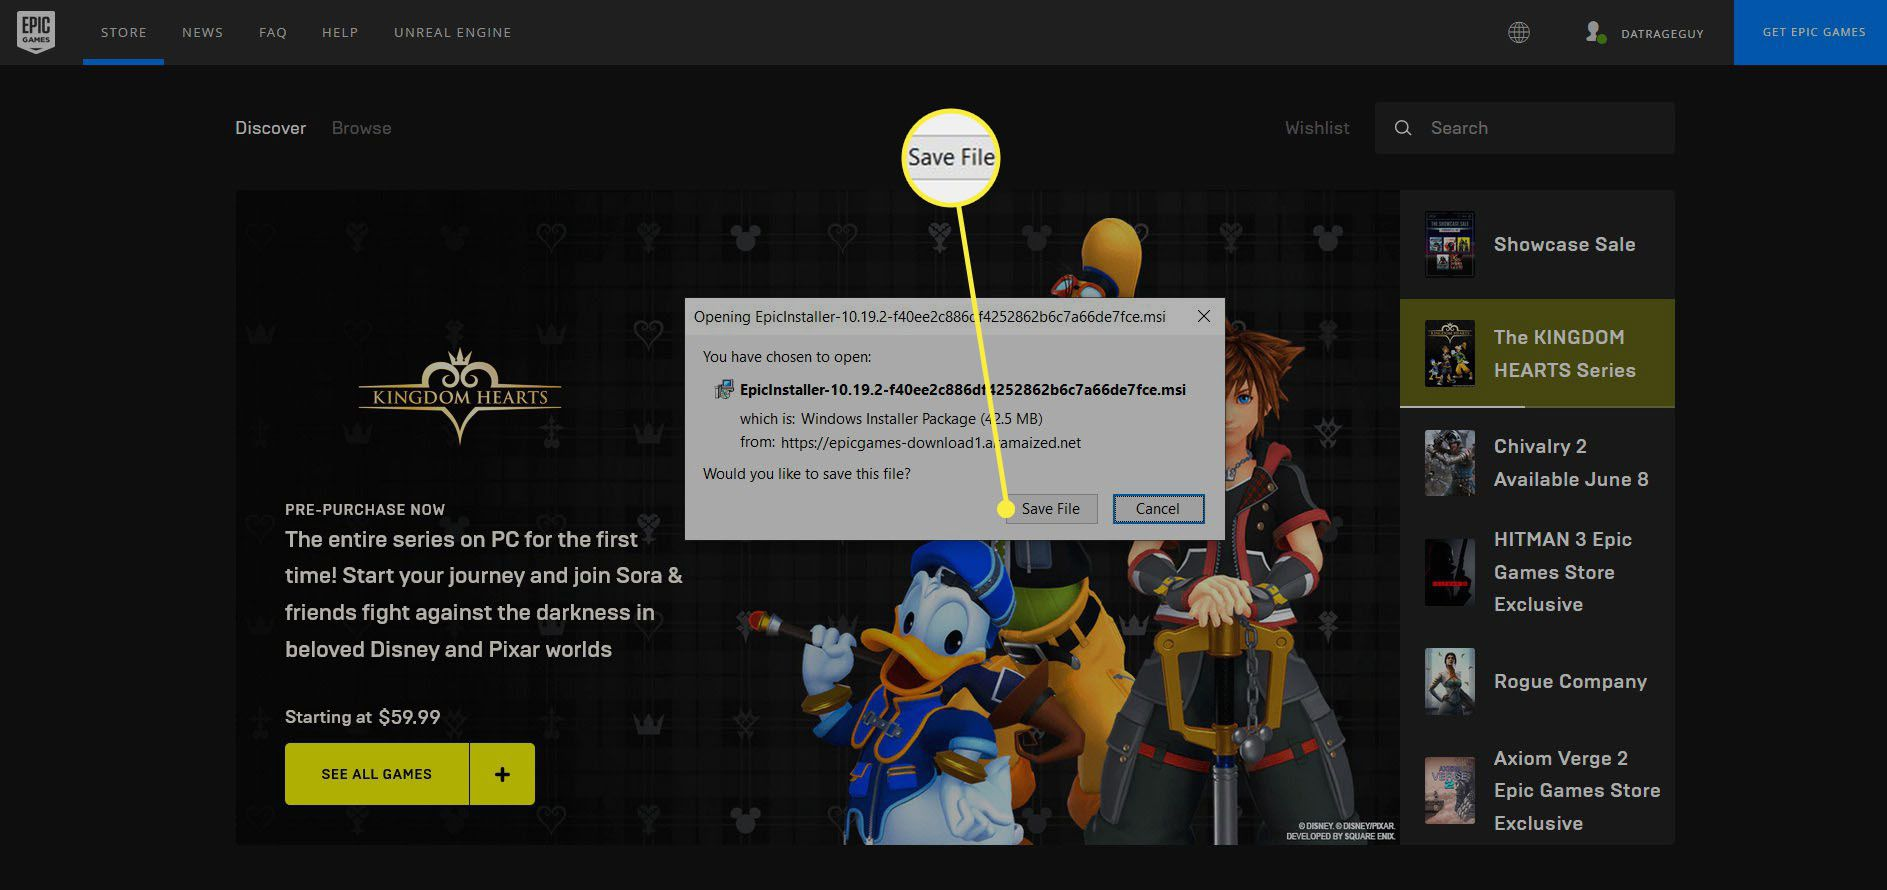 The Epic Games Launcher download popup.